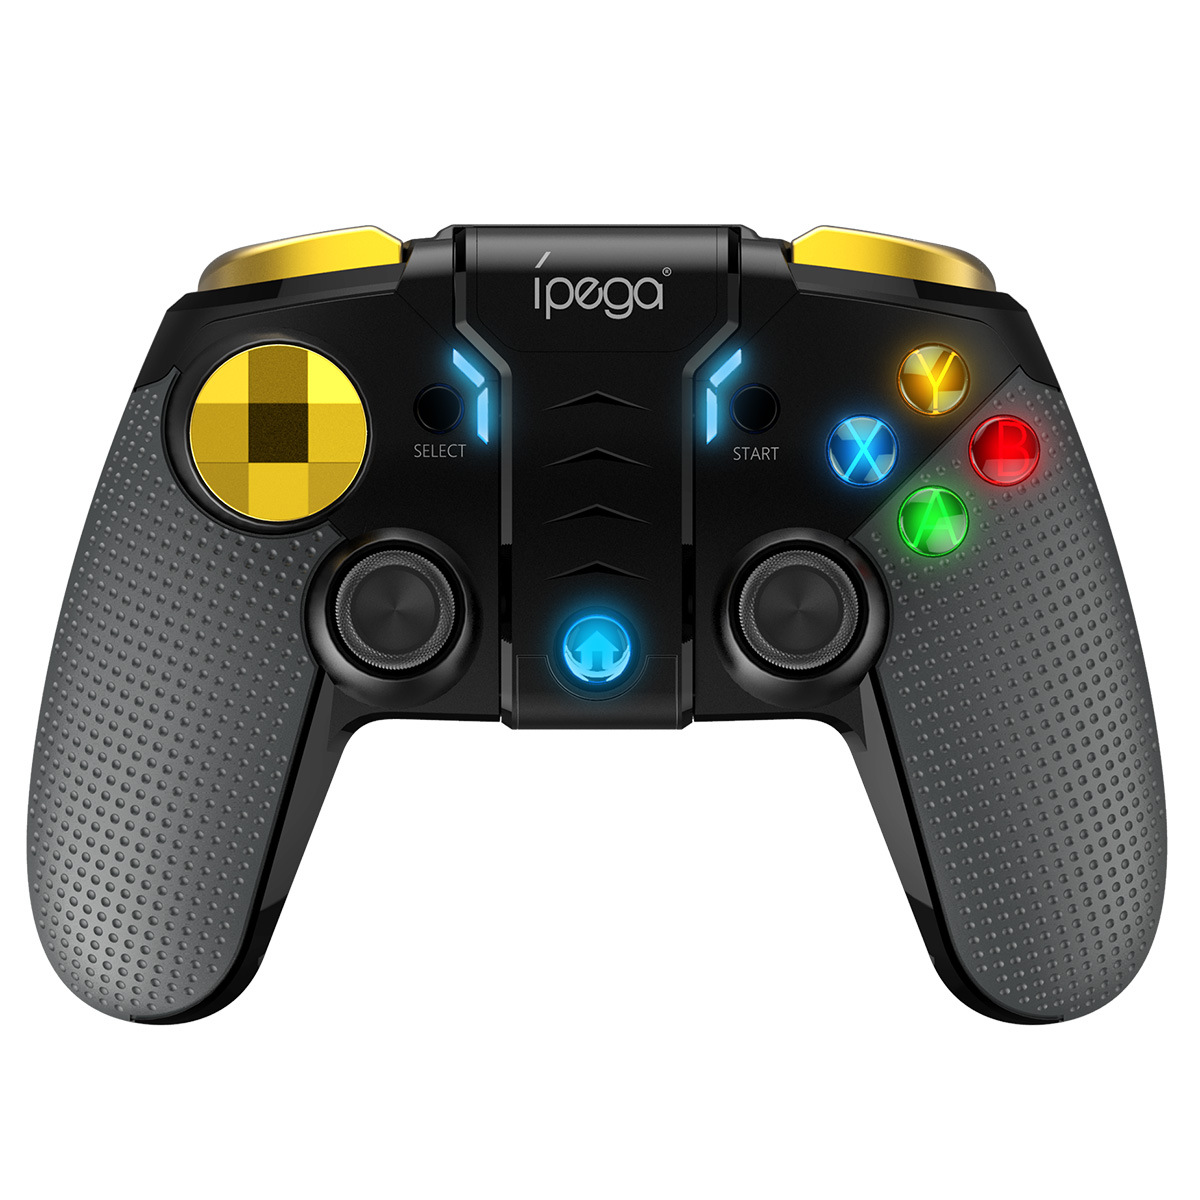 Ipega Pg 9118 Smart Bluetooth Game Controller Gamepad Wireless Joystick Console Game With Telescopic Holder For